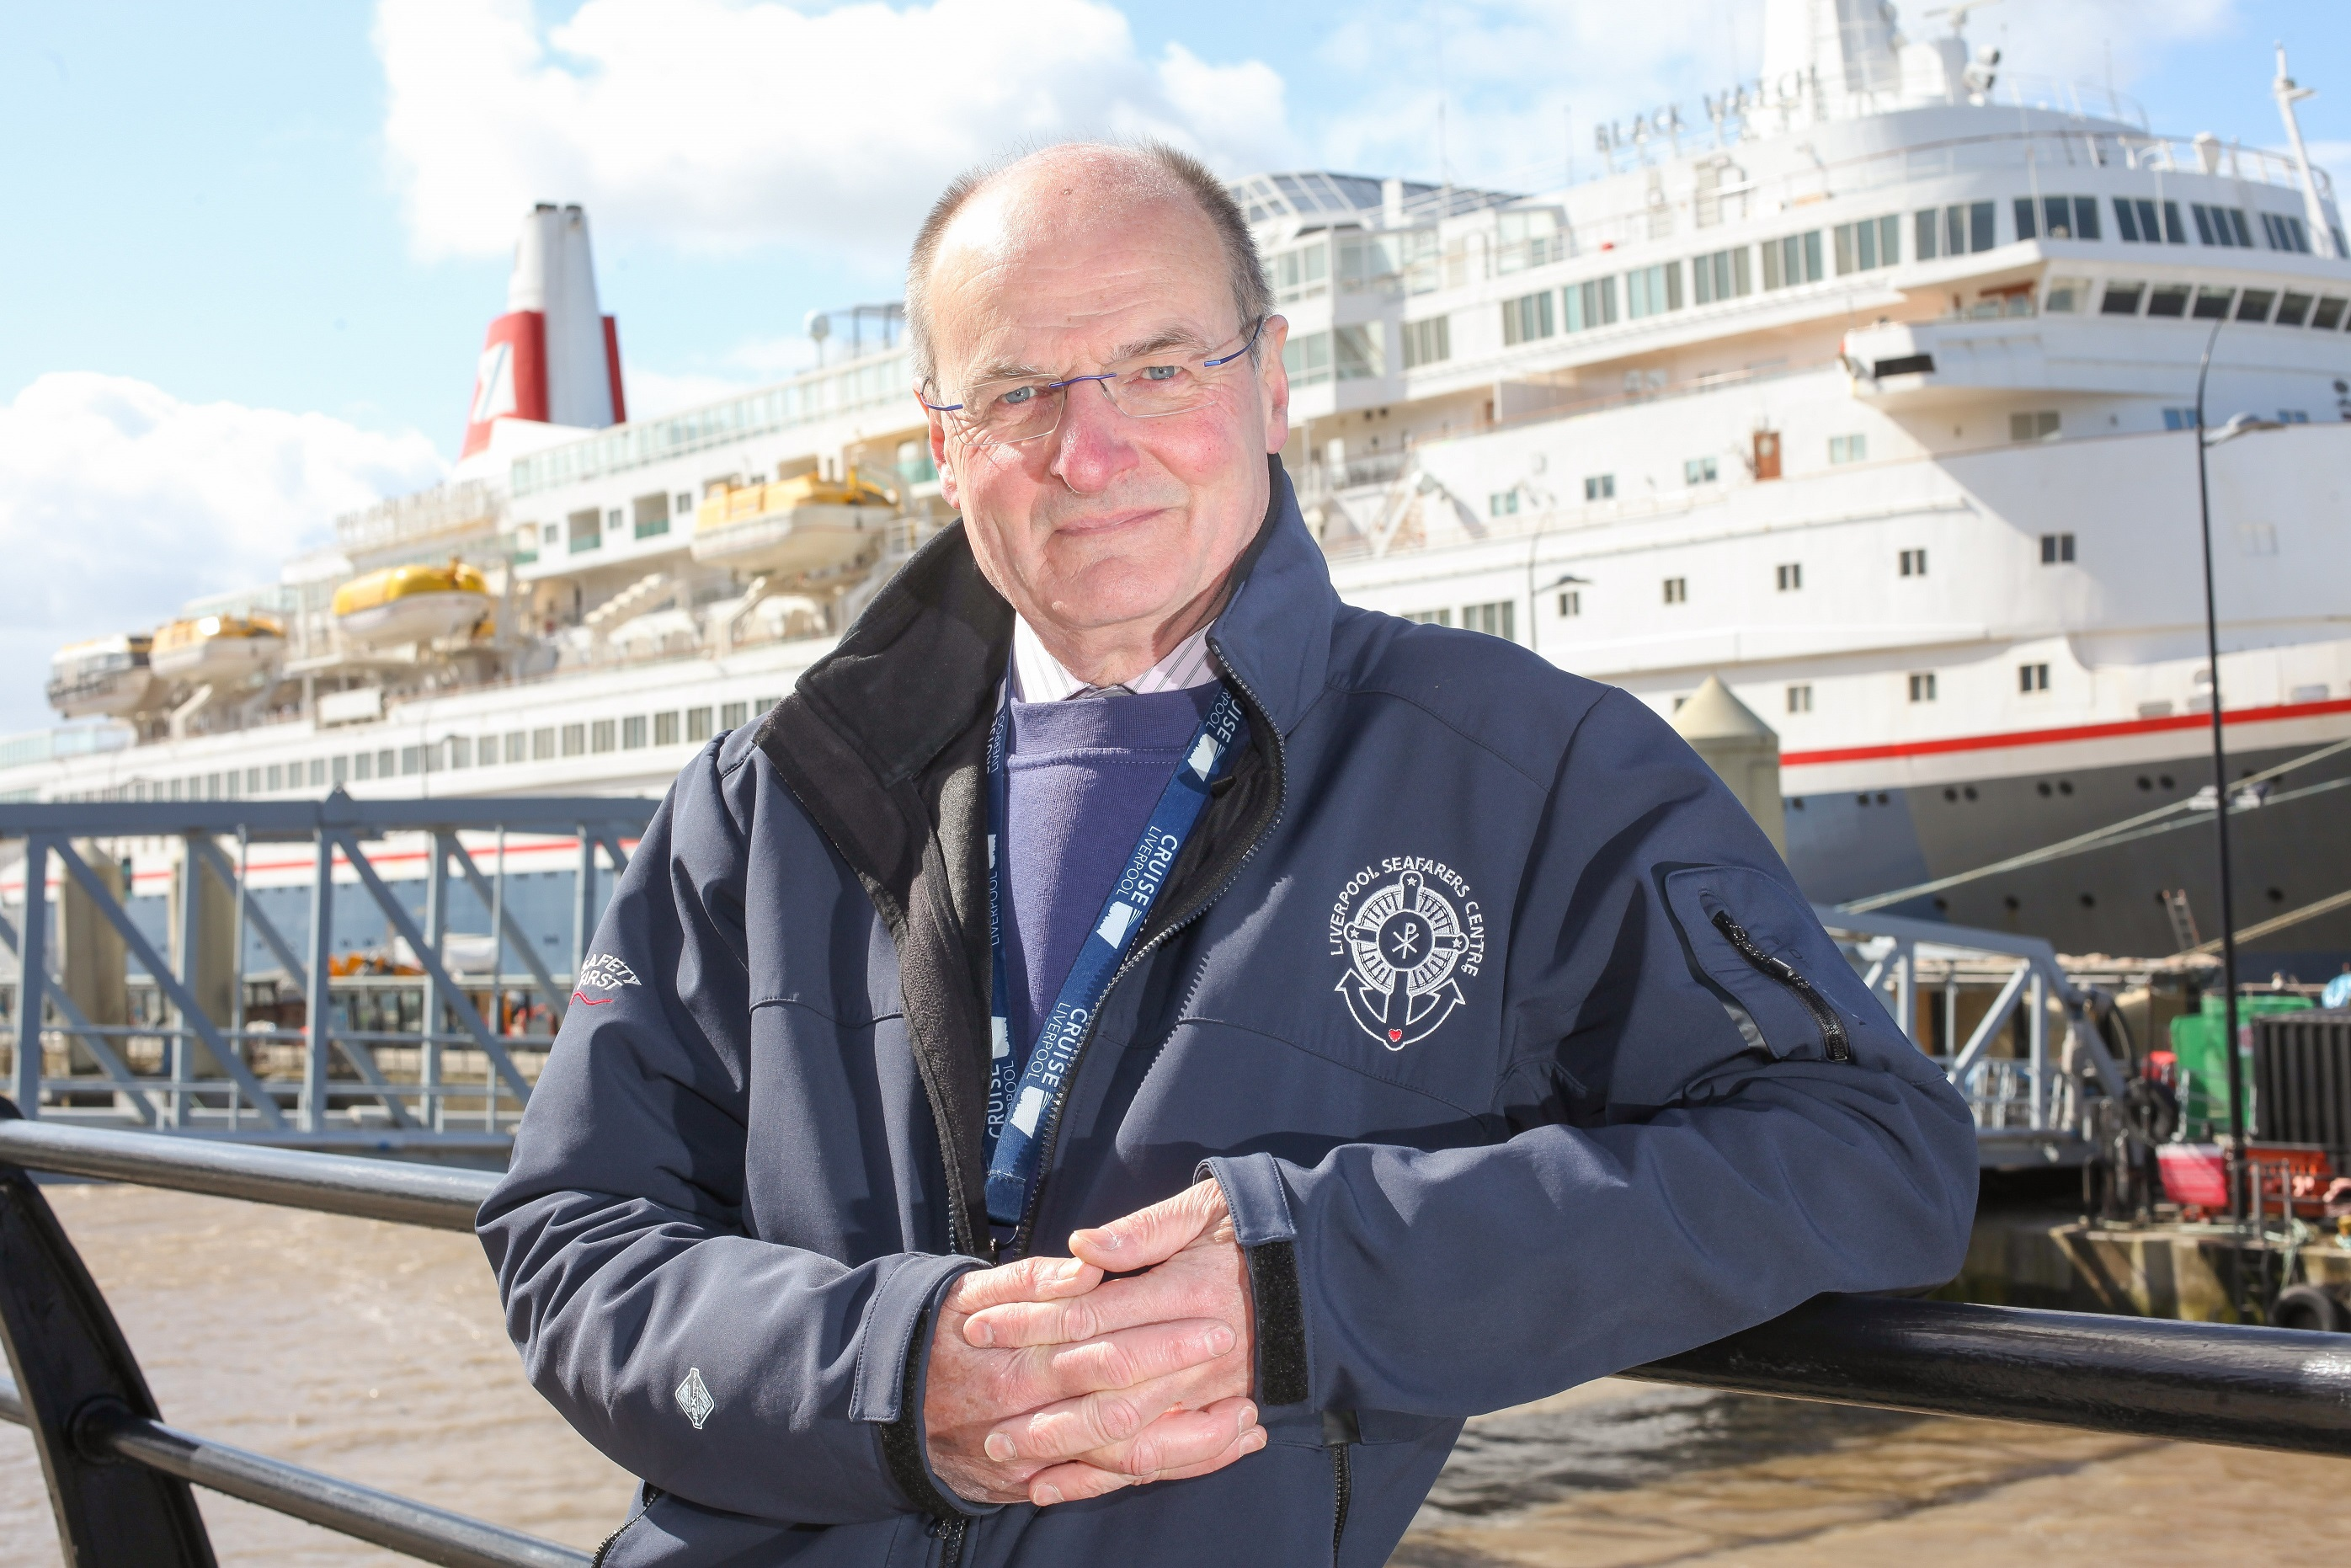 Seafarers charity wants to boost income through a tariff on ships entering Liverpool port